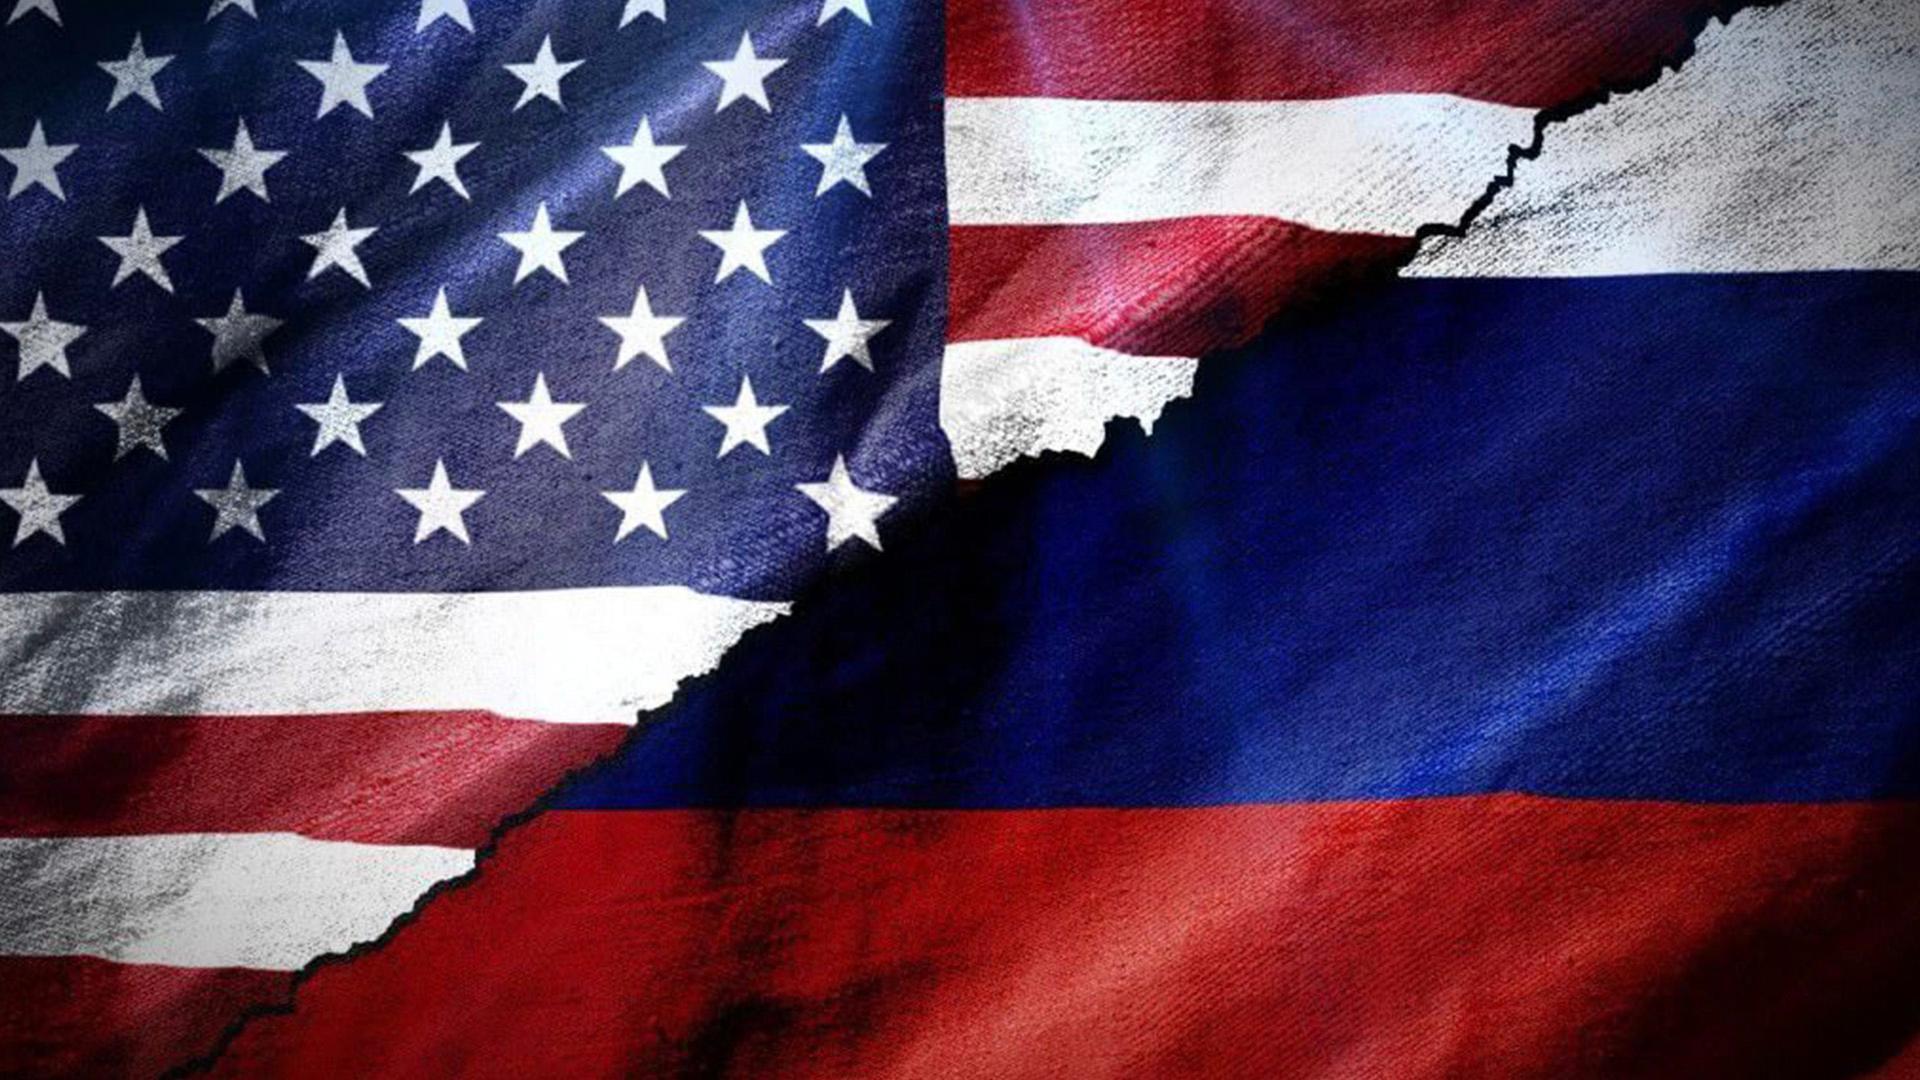 US warns Middle Eastern countries against cooperating with Russia